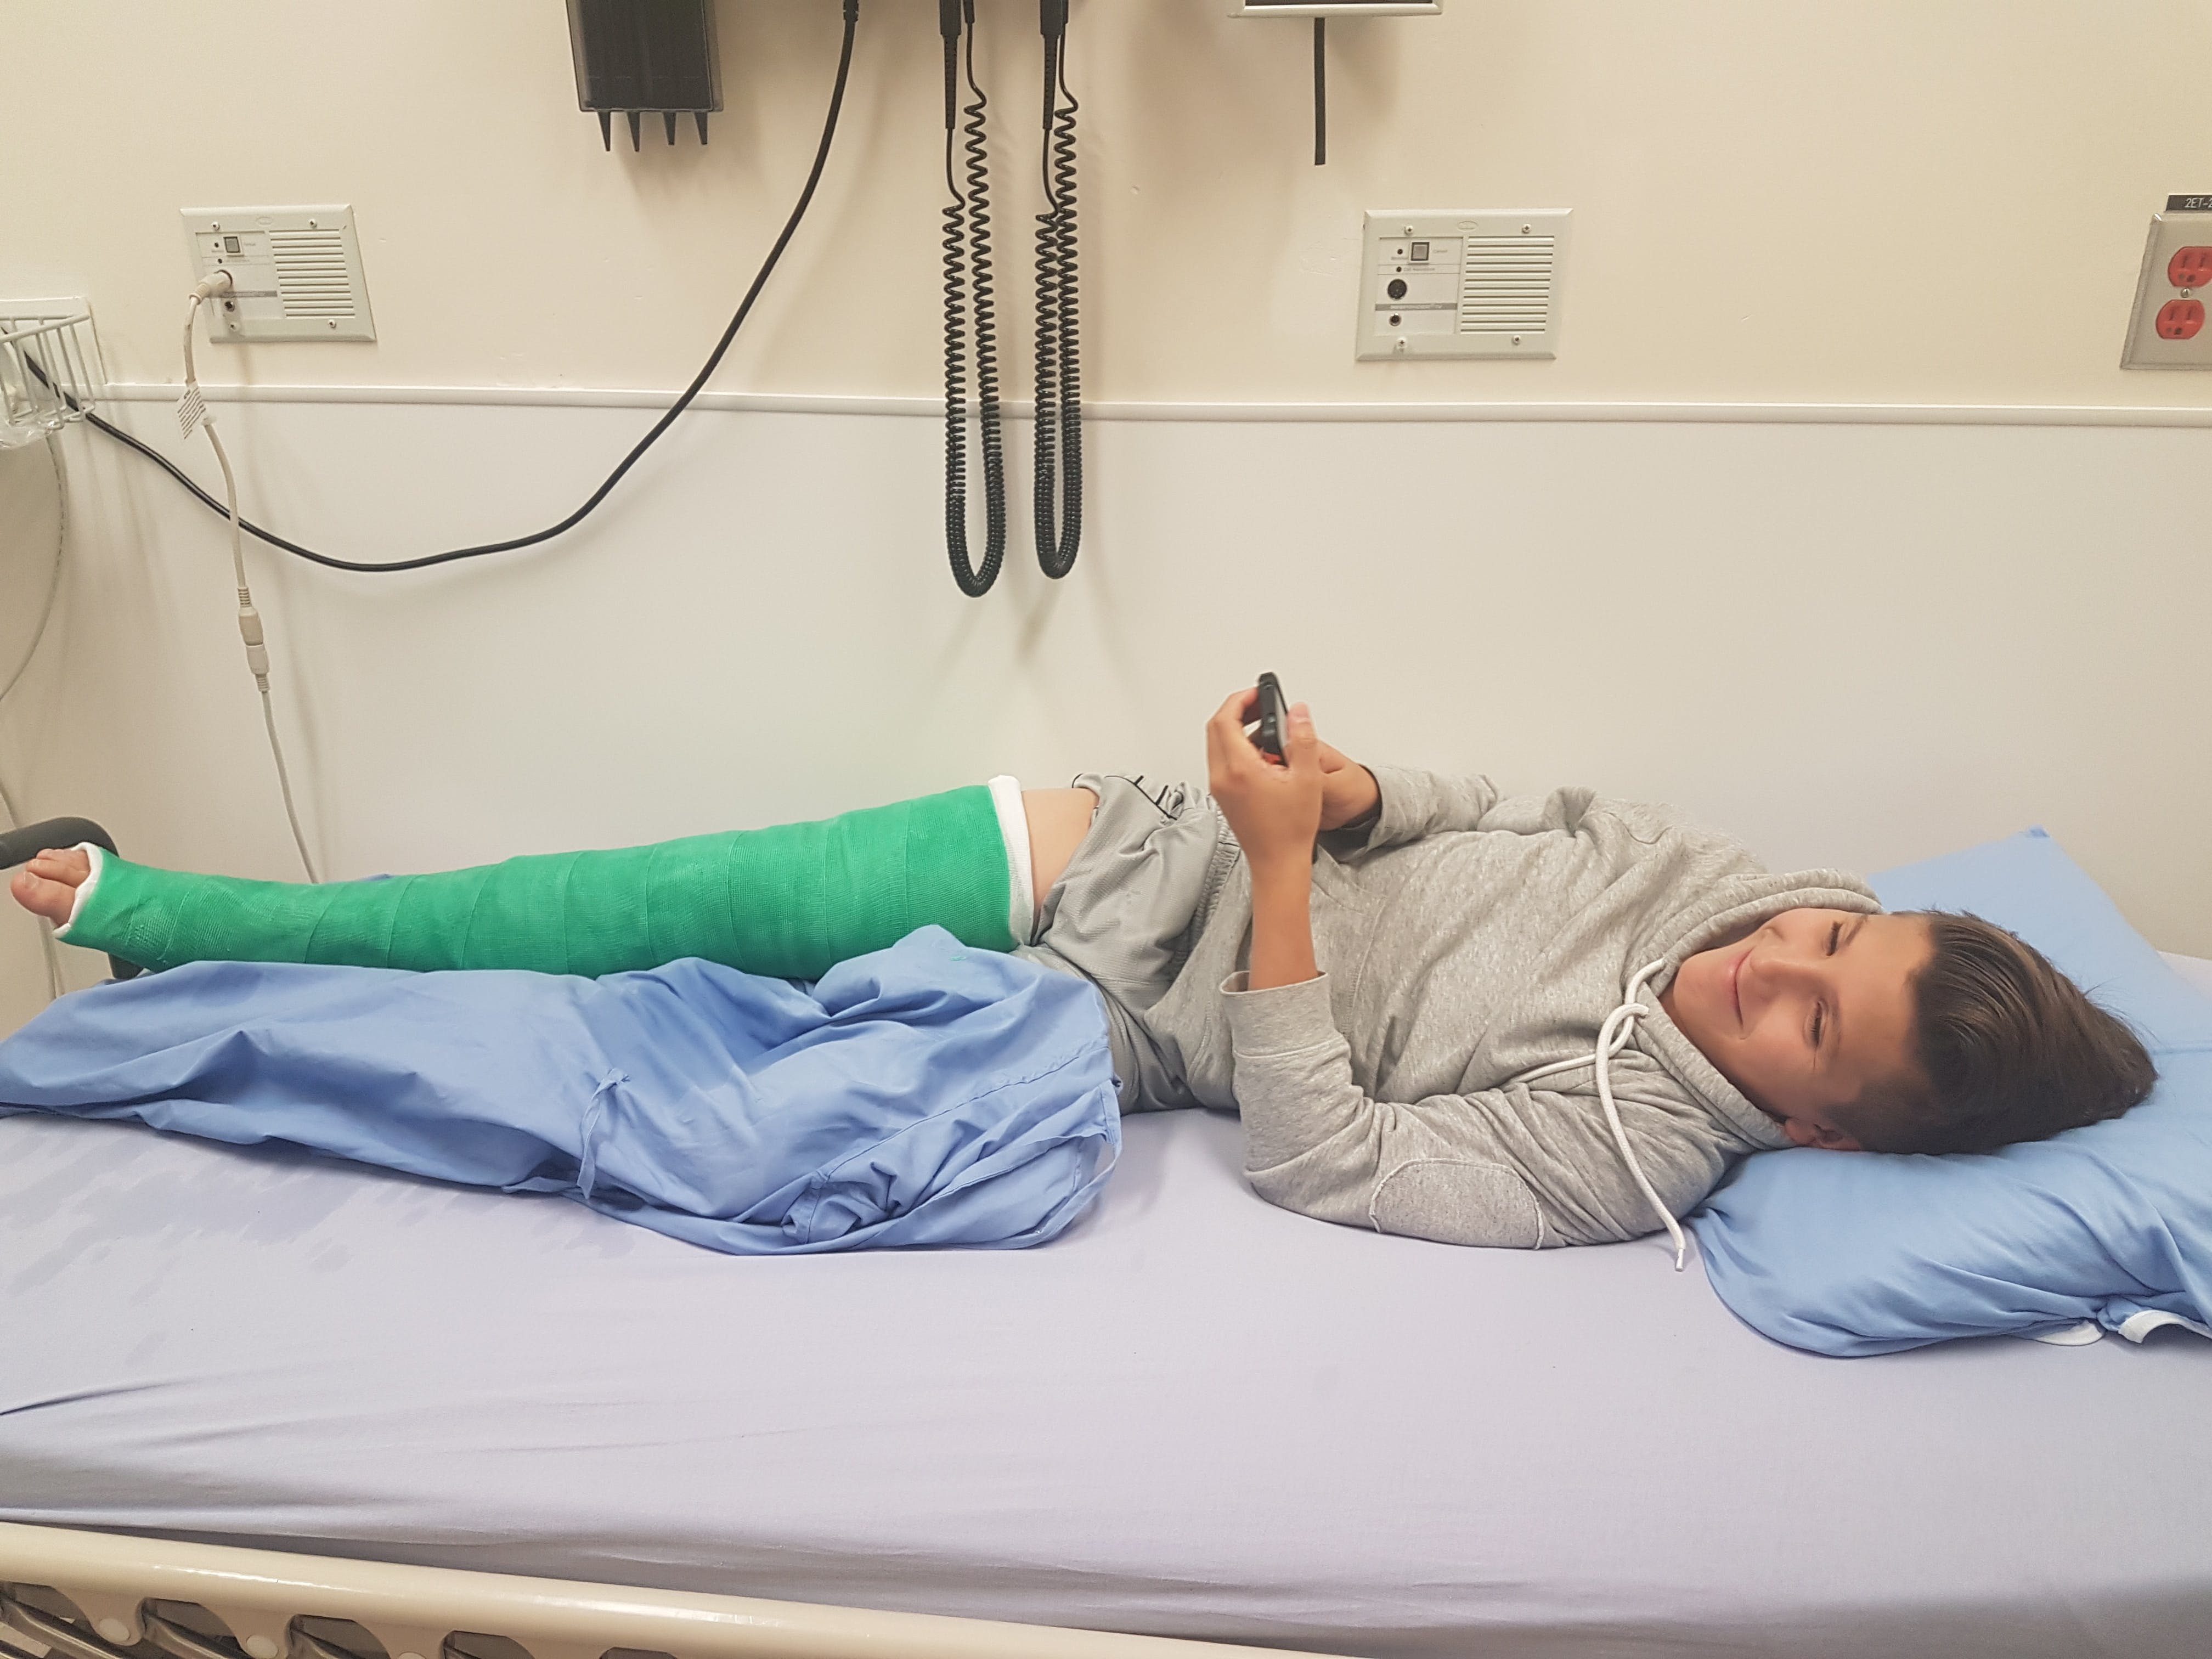 Free stock photo of Hockey injury, Knee cast, Young lad in hospital